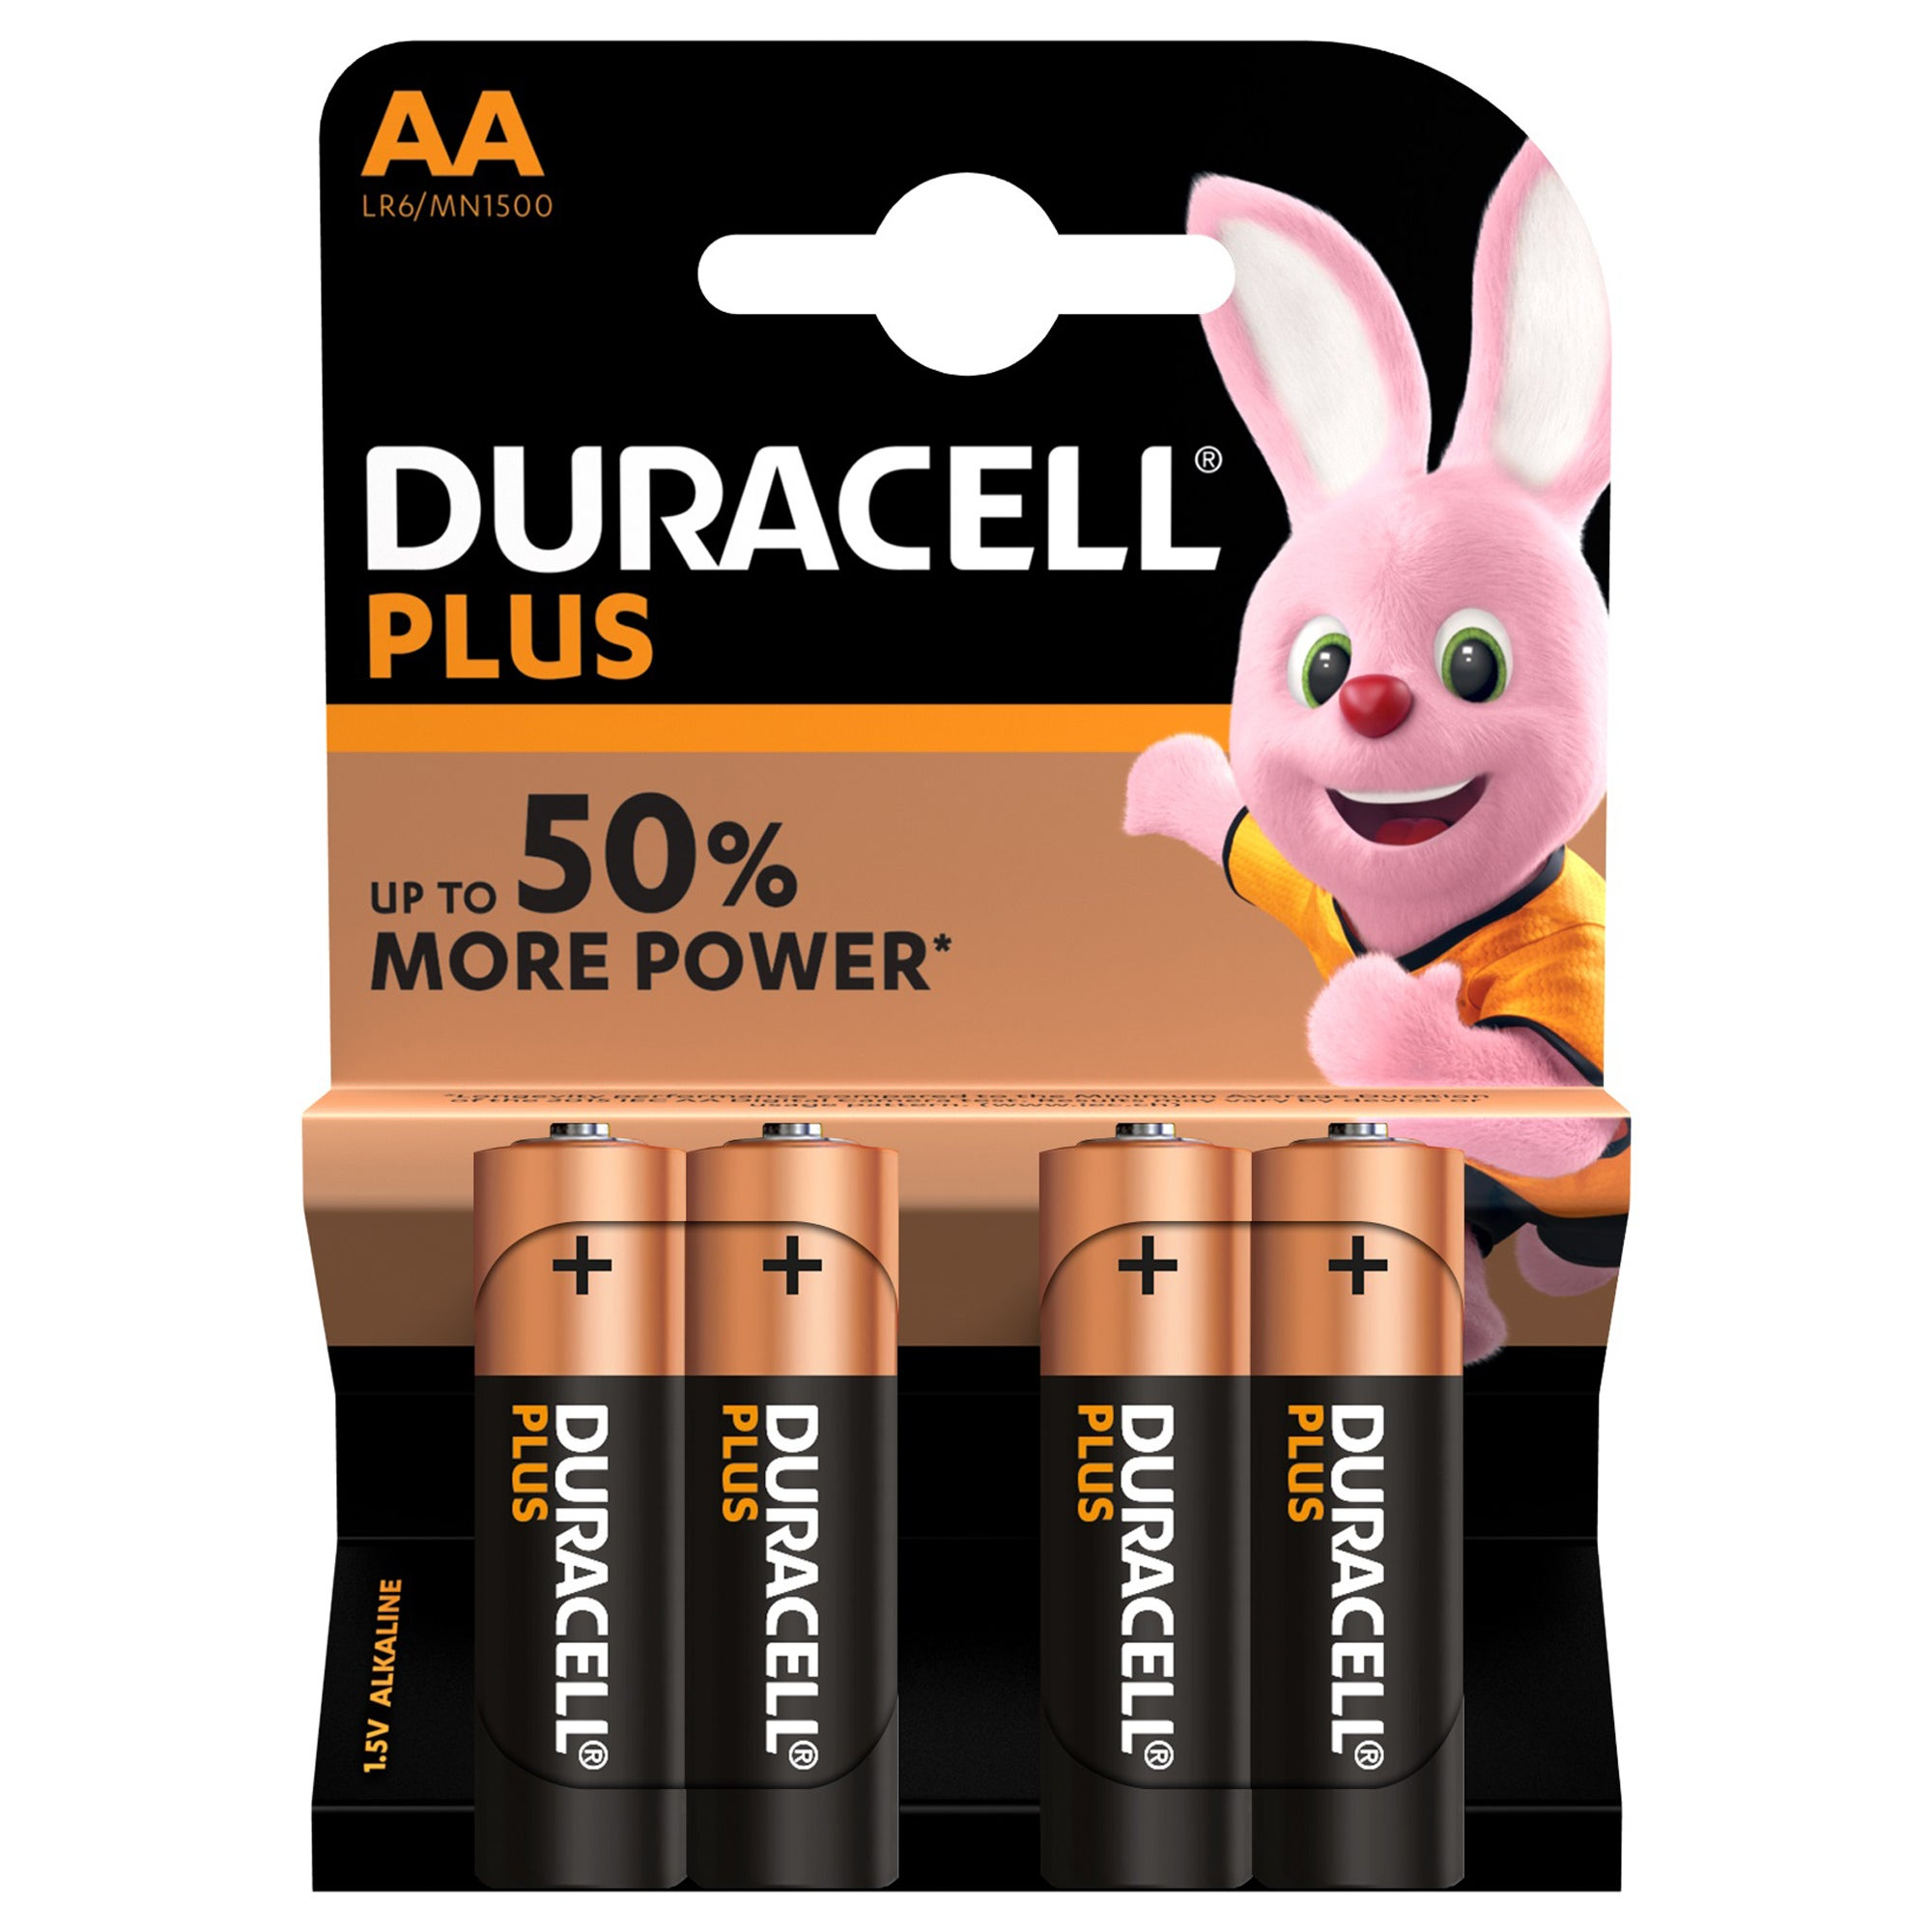 Duracell Pack of 4 Plus AA Batteries